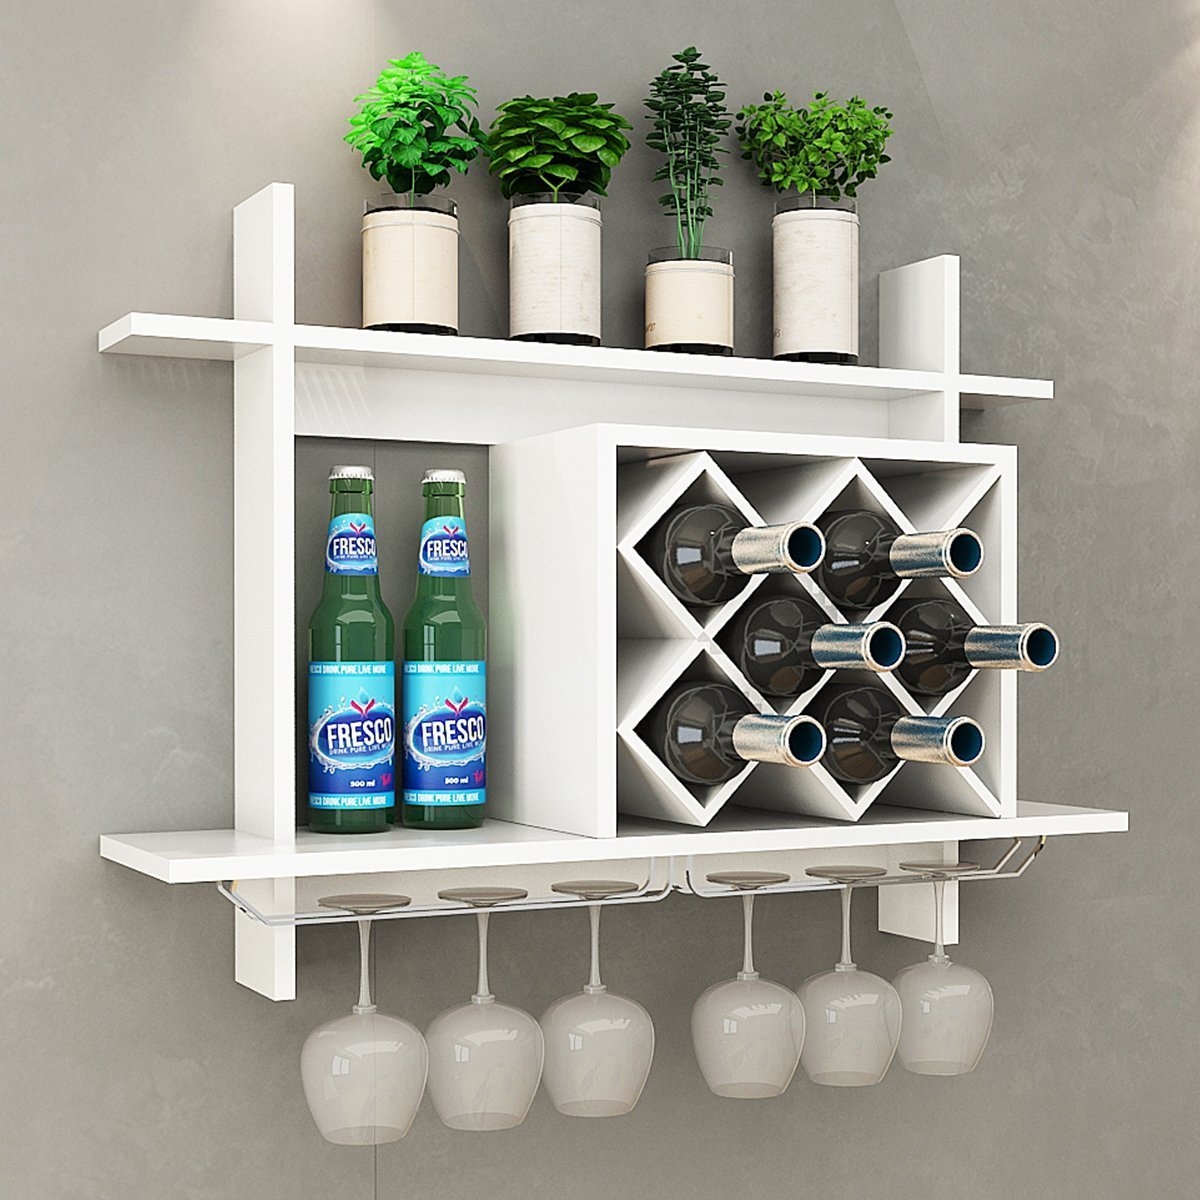 Giantex Wall Mounted Wine Rack Organizer W/Metal Glass Holder & Multifunctional Storage Shelf Modern Diamond-Shaped Wood Wine Server for 6 Bottles Wine Storage Display Rack (White) by Giantex